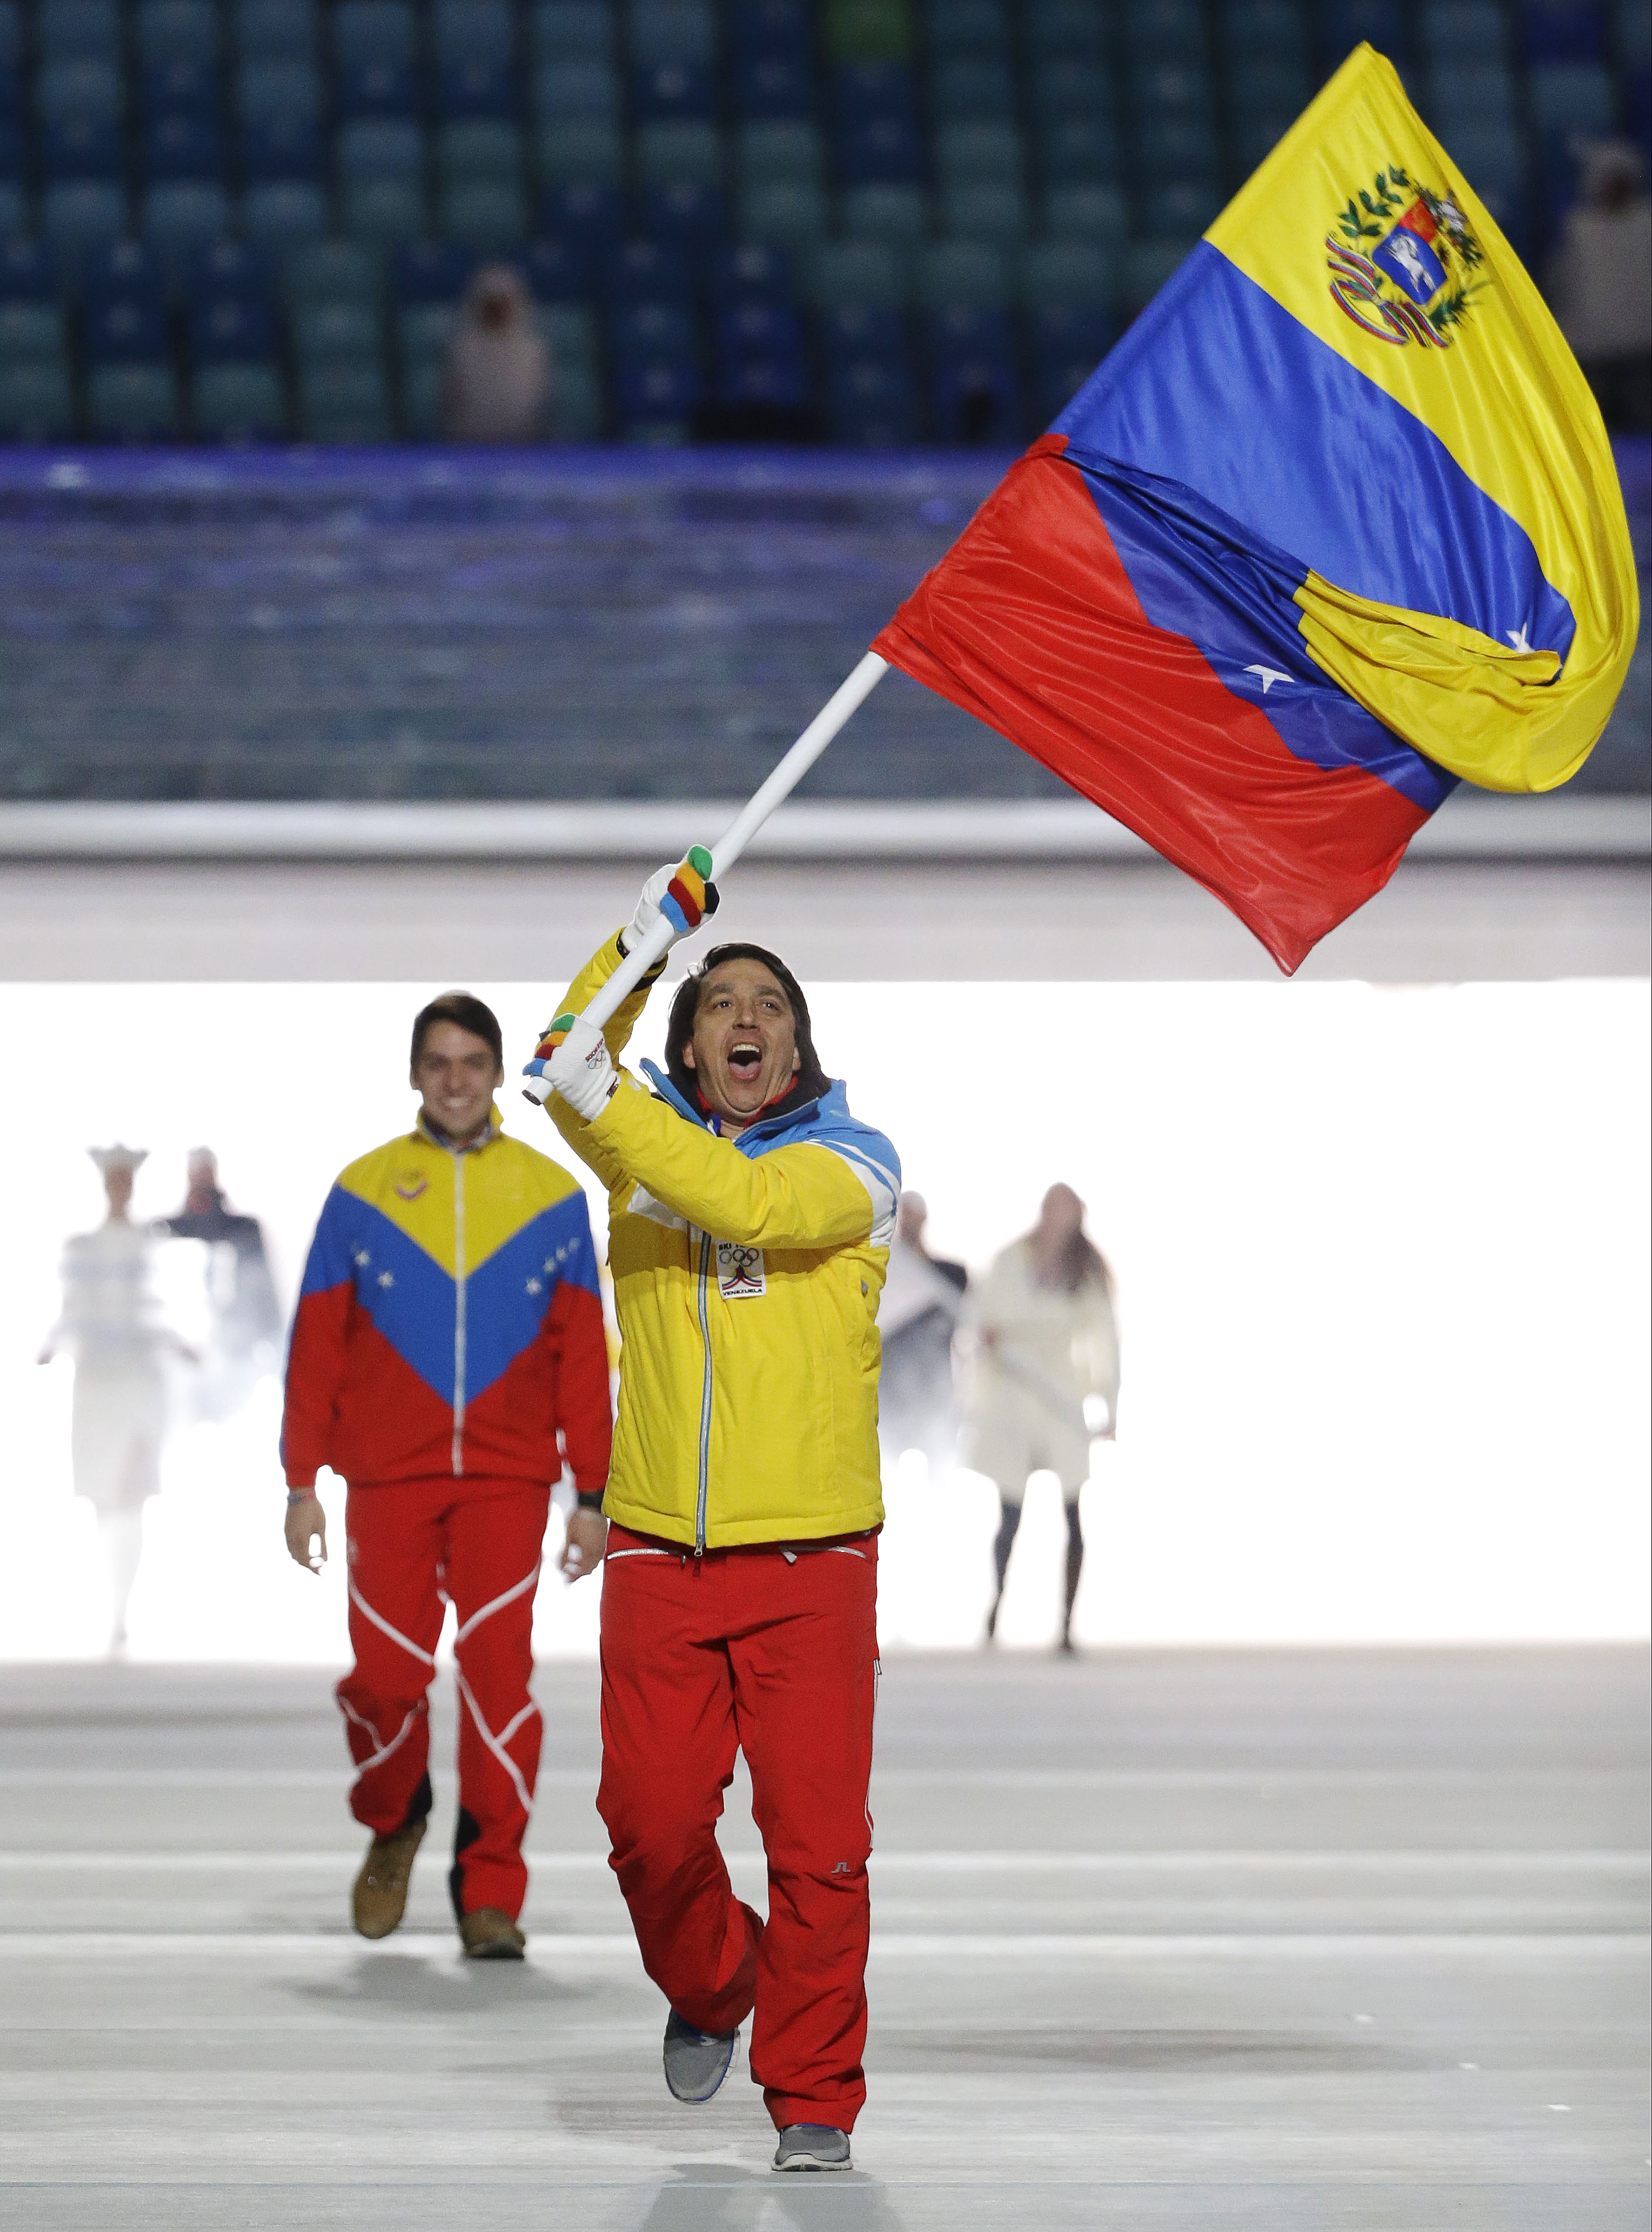 FILE - In this Feb. 7, 2014 file photo, Antonio Pardo of Venezuela carries a representation of his country's national flag as he leads the team during the opening ceremony of the 2014 Winter Olympics in Sochi, Russia. There have been Venezuelan athletes at past Winter Olympics, but Pardo is the first to enter an Alpine skiing event. (AP Photo/Mark Humphrey, File)